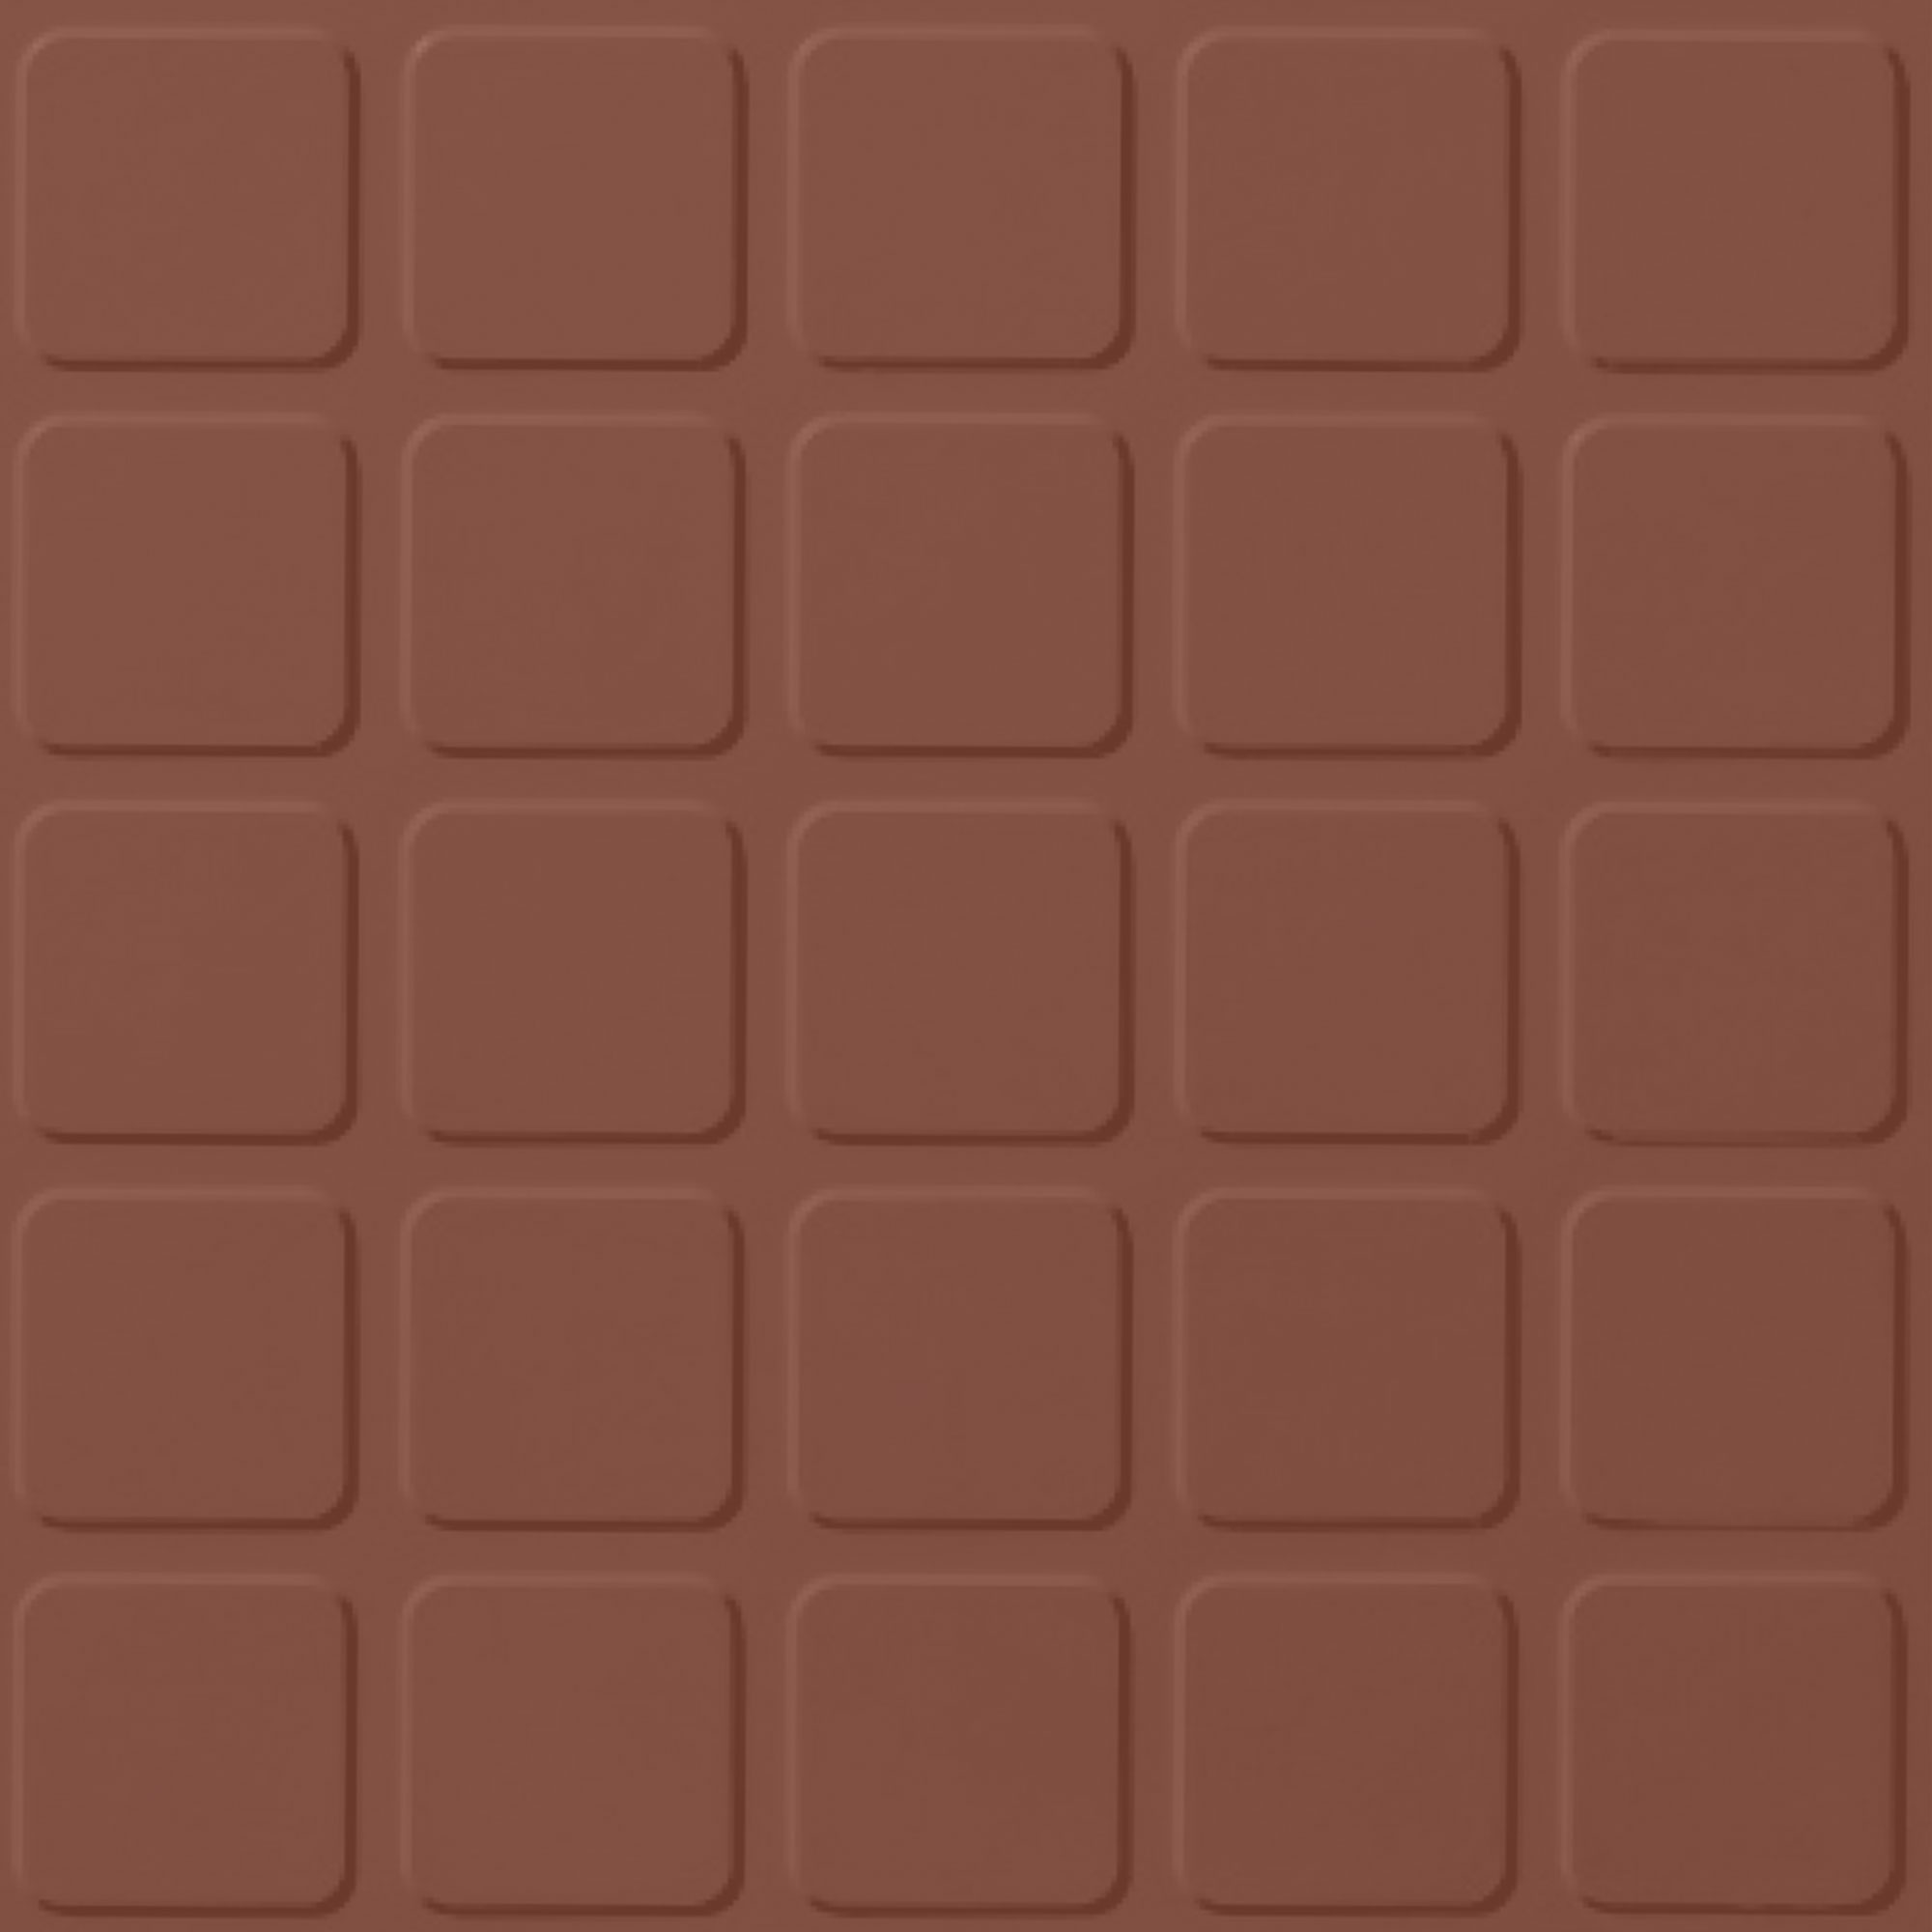 Roppe Rubber Design Treads - Raised Square Design Brick 188